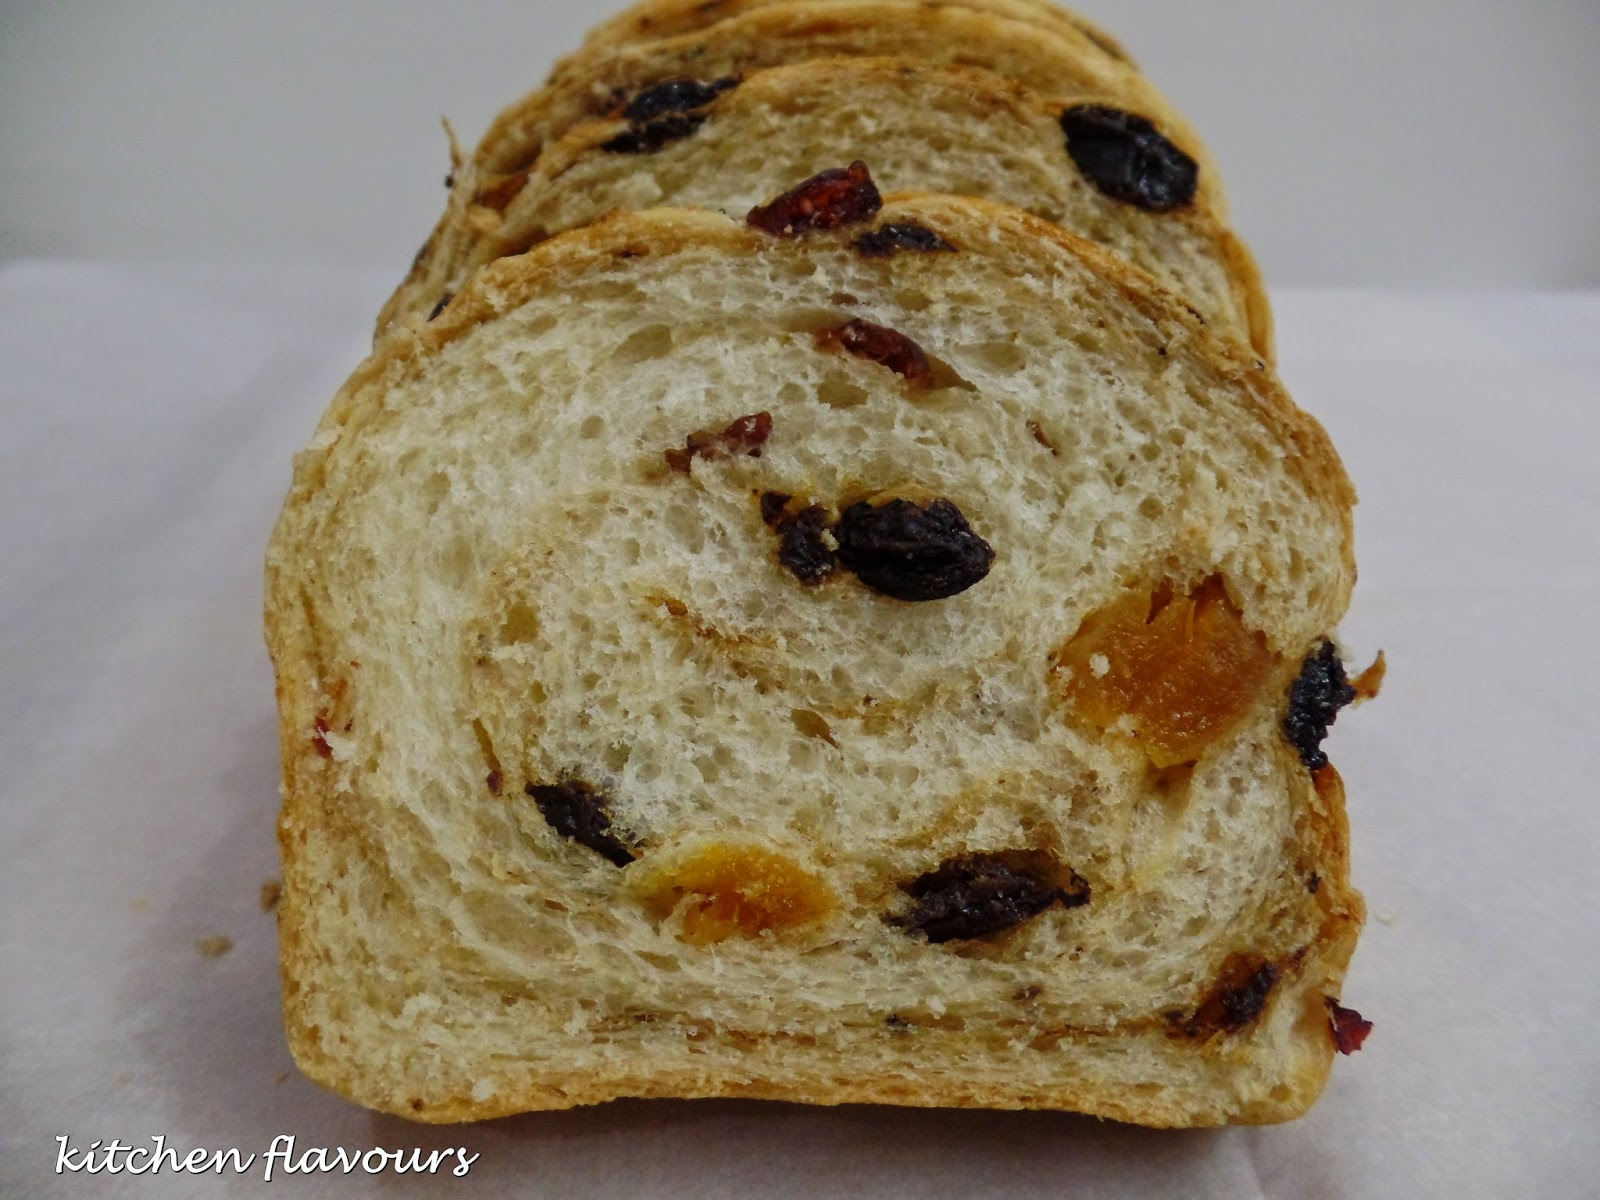 The top tends to get brown rather quick as this bread has honey so tent the top with foil if the top is browning too fast. & kitchen flavours: Honey and Dried Fruit Loaf